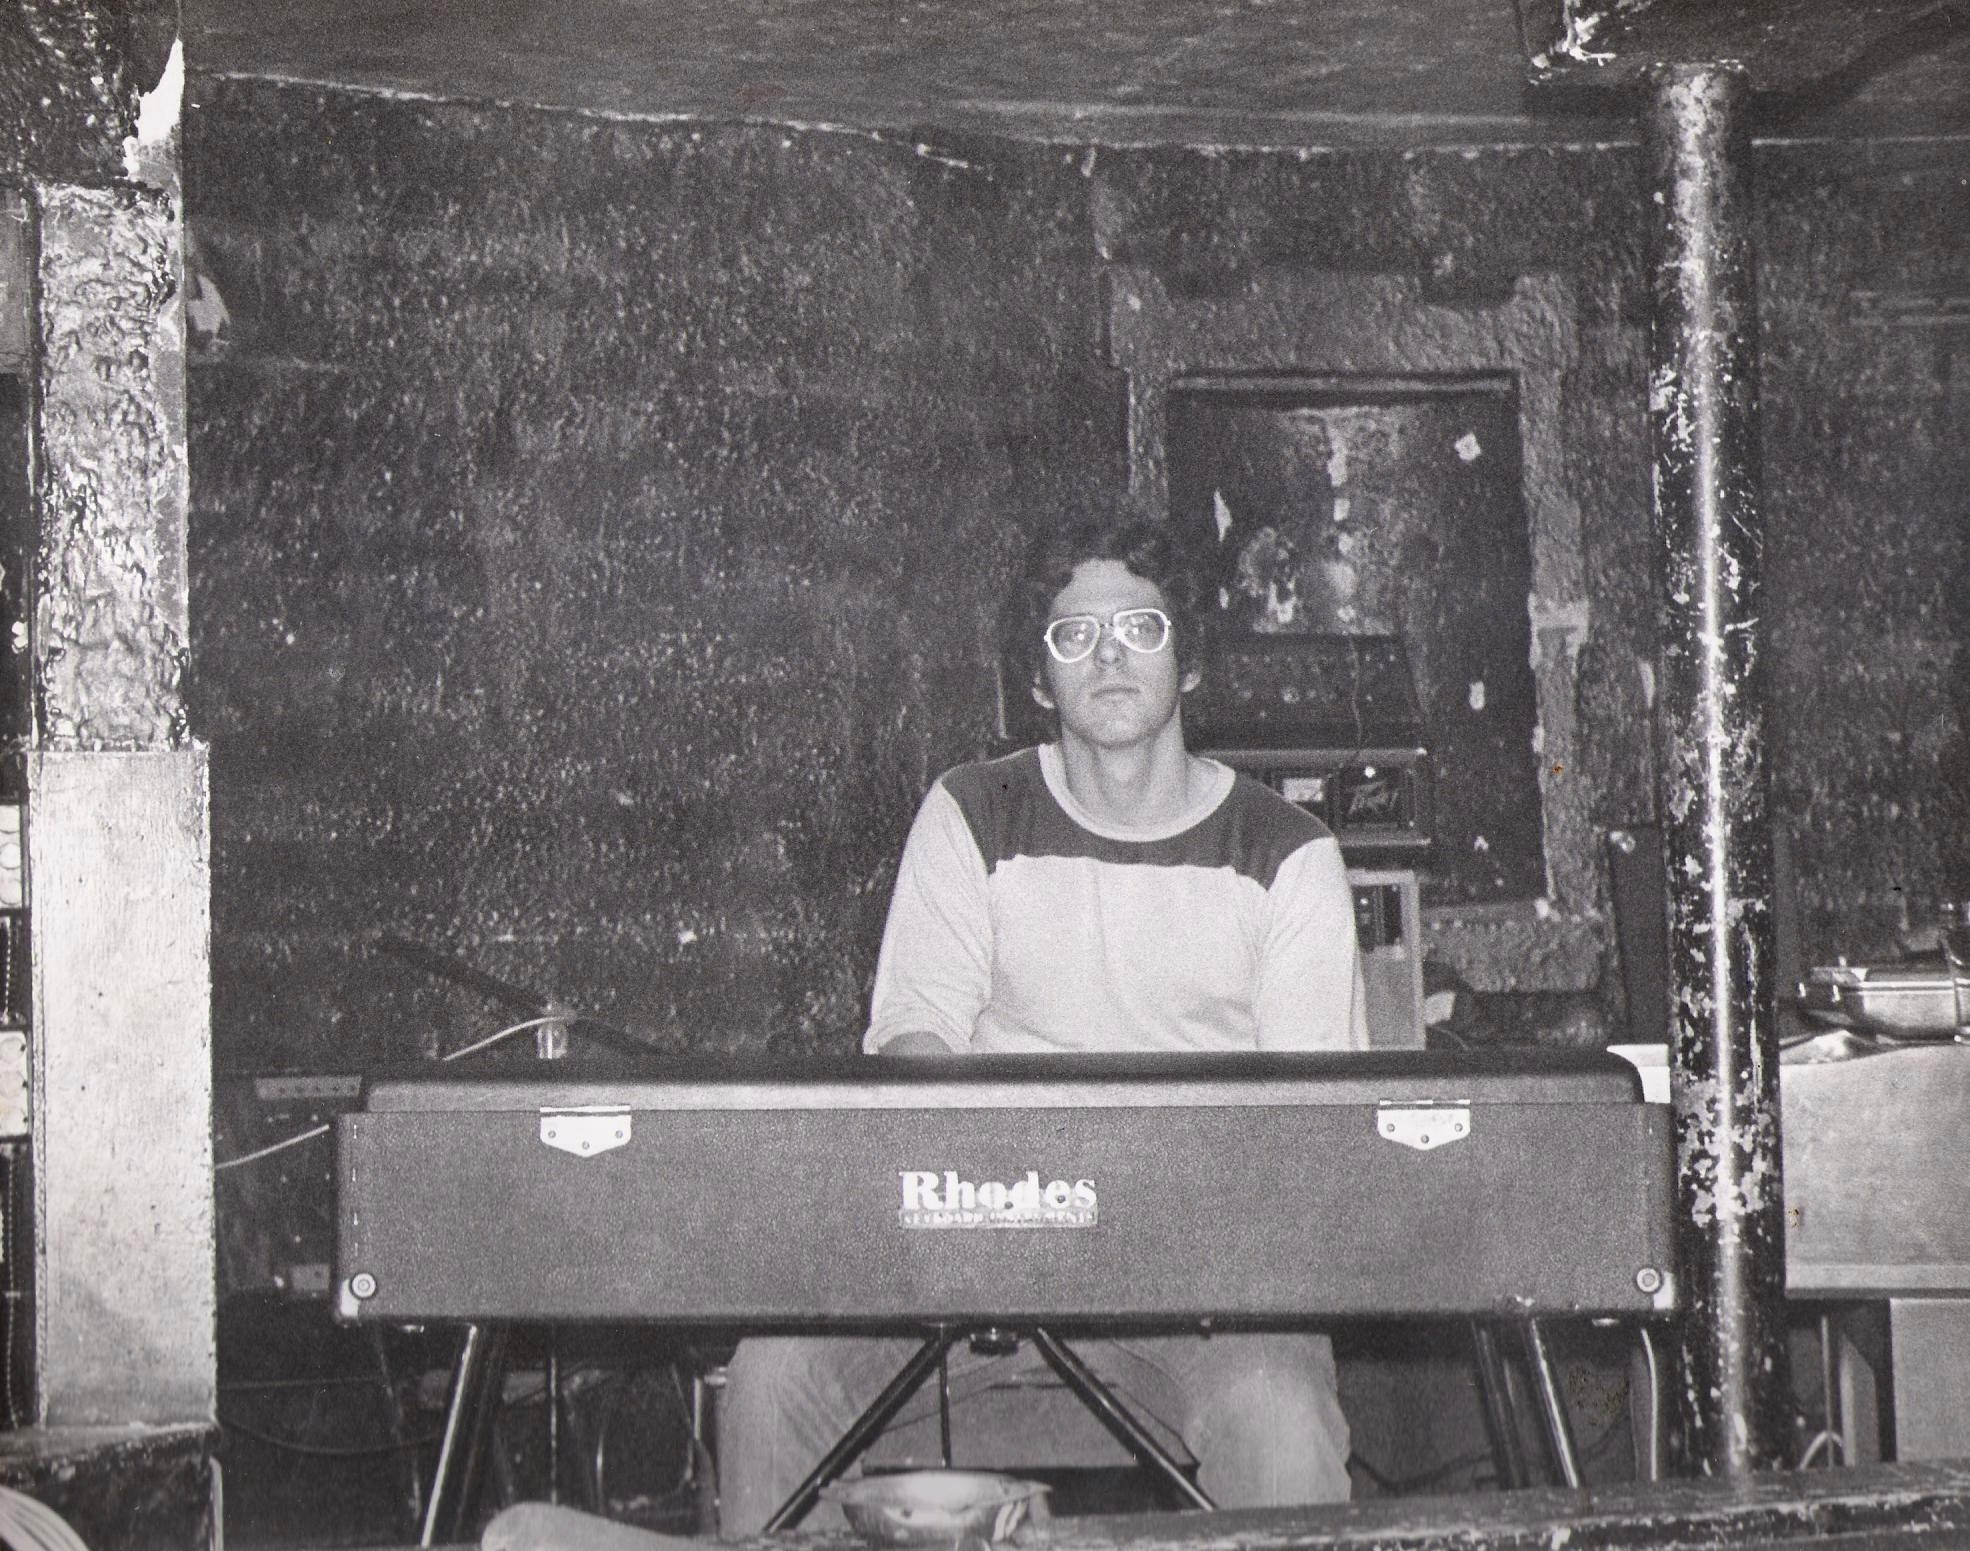 McVans 1979 - Dave Maltbie with Fender Rhodes, Wurlitzer 4100 Organ and Moog Sonic Six